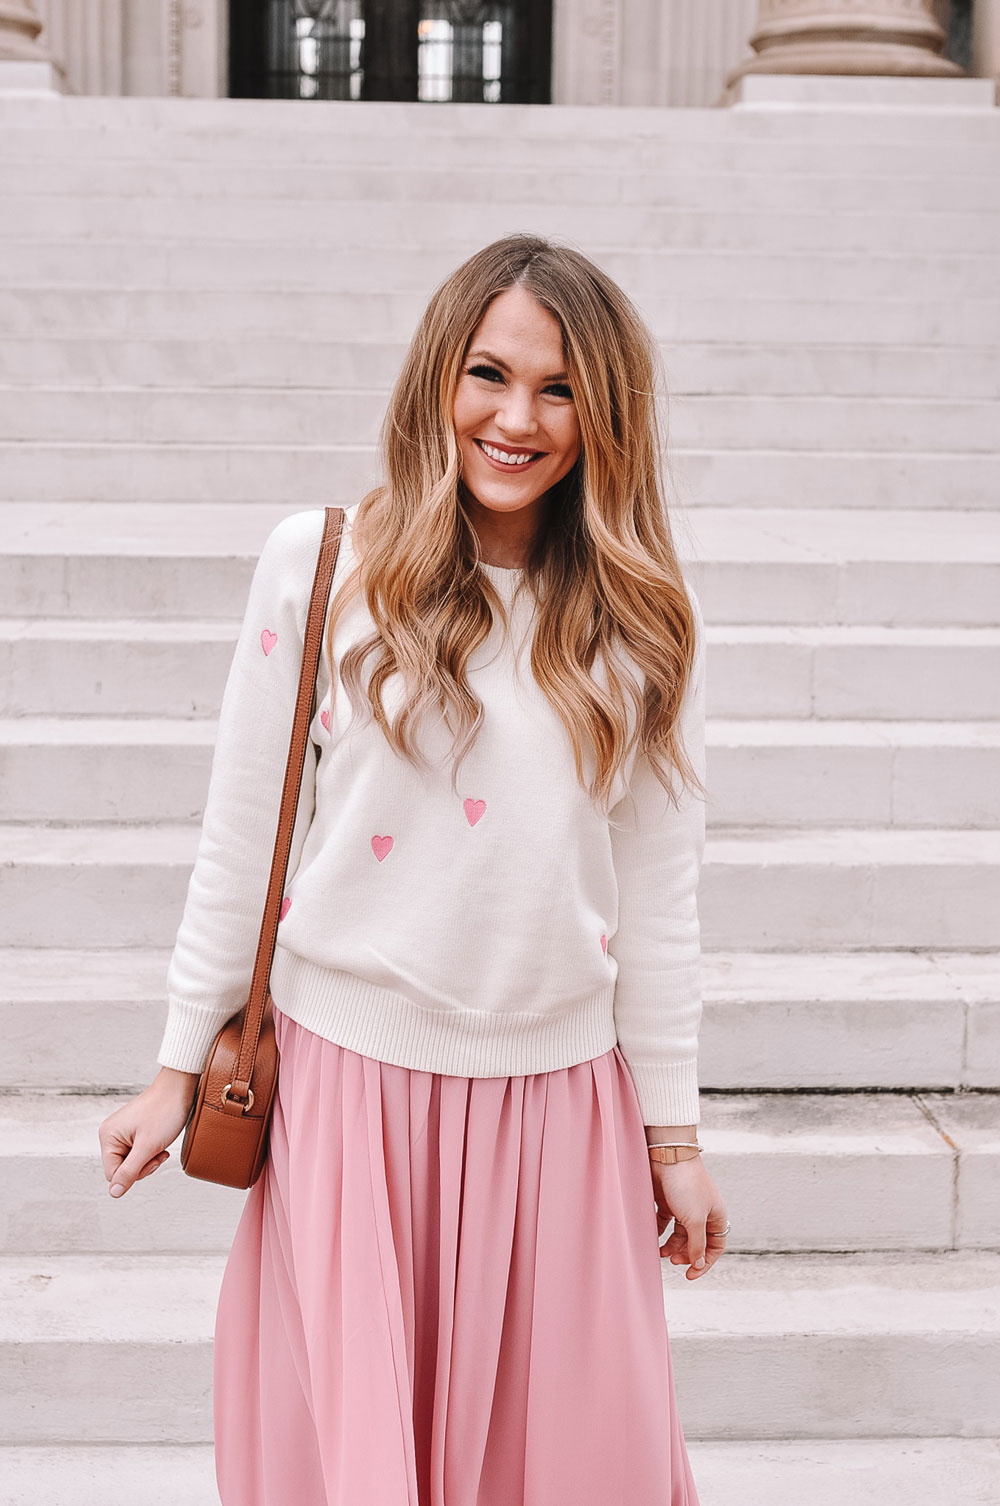 What to wear for Valentine's Day with OKC blogger @AmandasOK